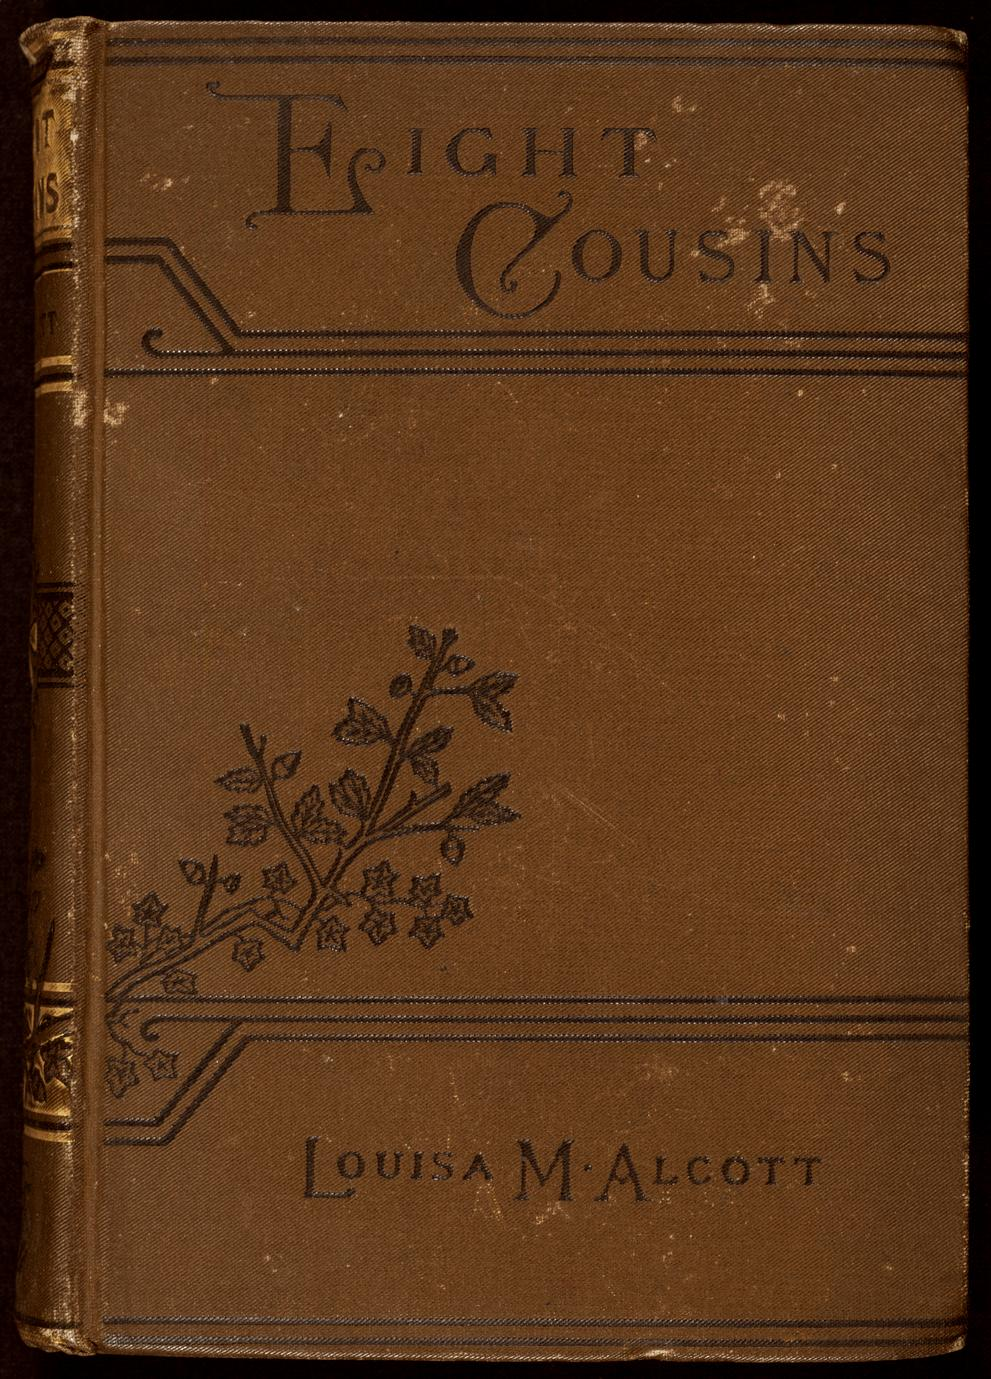 Eight cousins ; or, The aunt-hill (1 of 2)